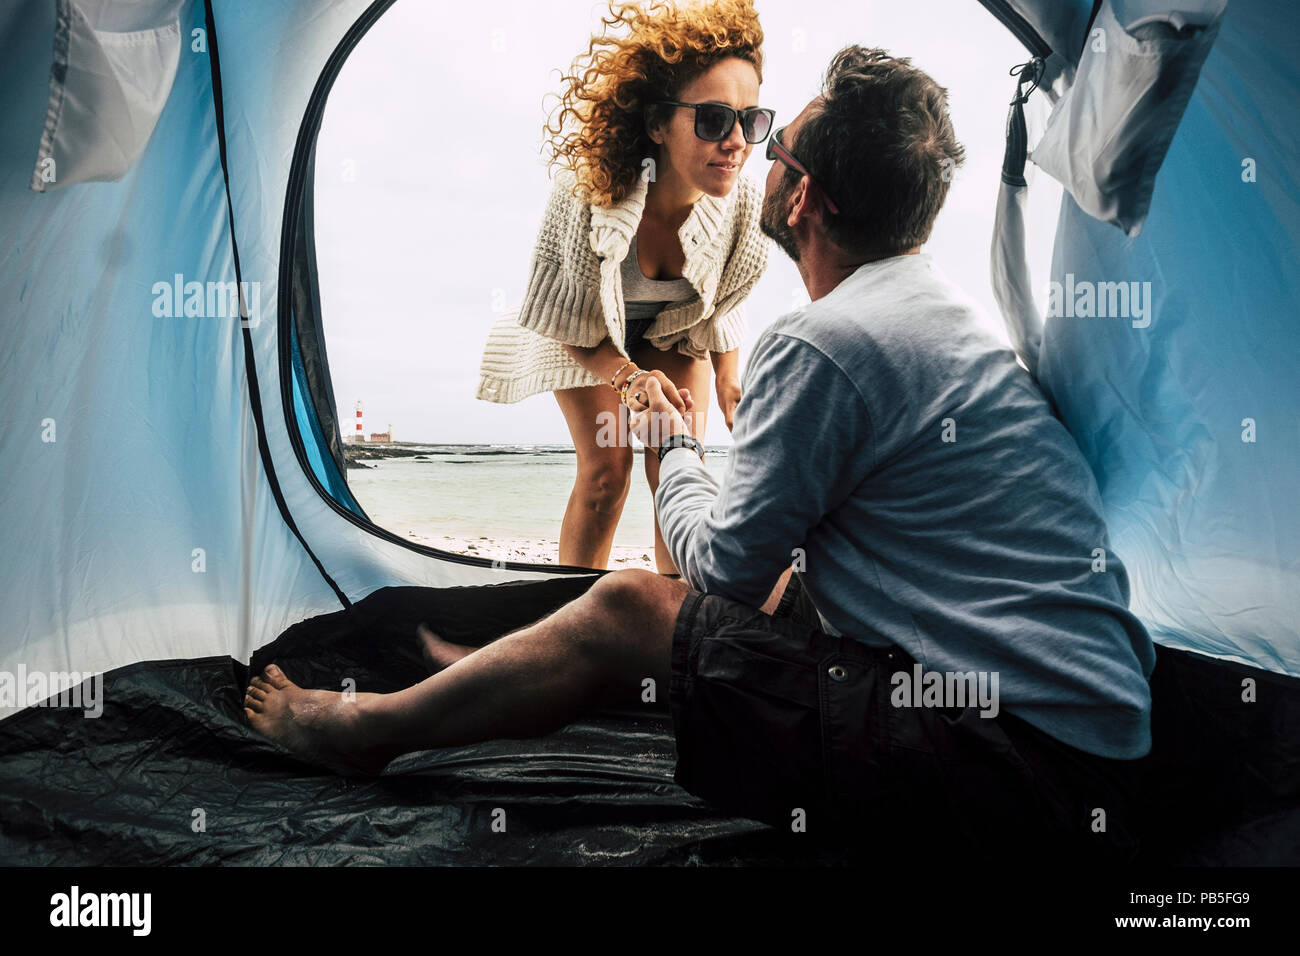 couple of caucasian woman and men 40 years old in love camping at the beach in tropical place, living near the ocean and enjoying vacation in tent. ki - Stock Image